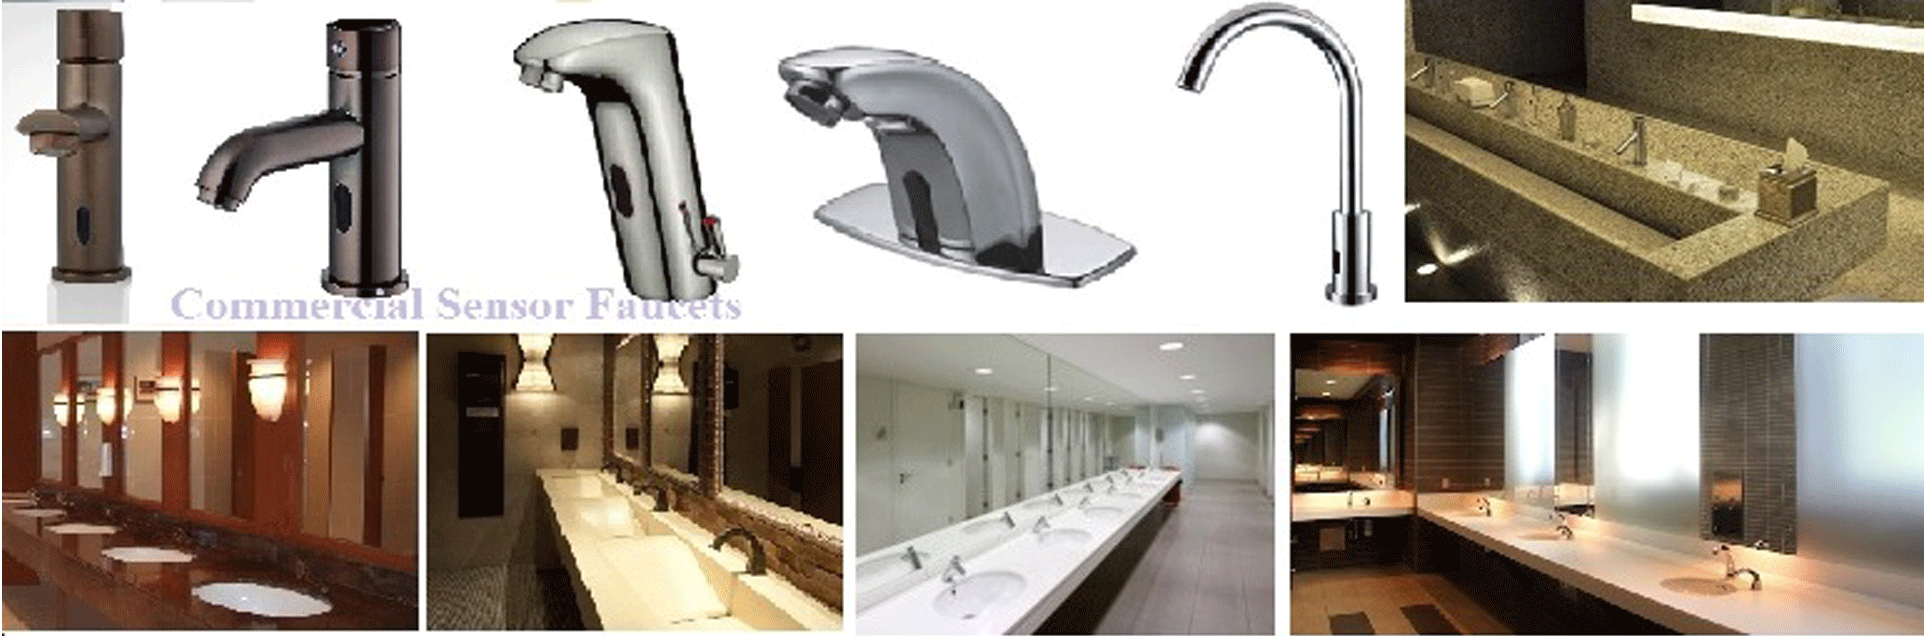 Oil Rubbed Bronze Automatic Commercial Motion Sensor Faucets